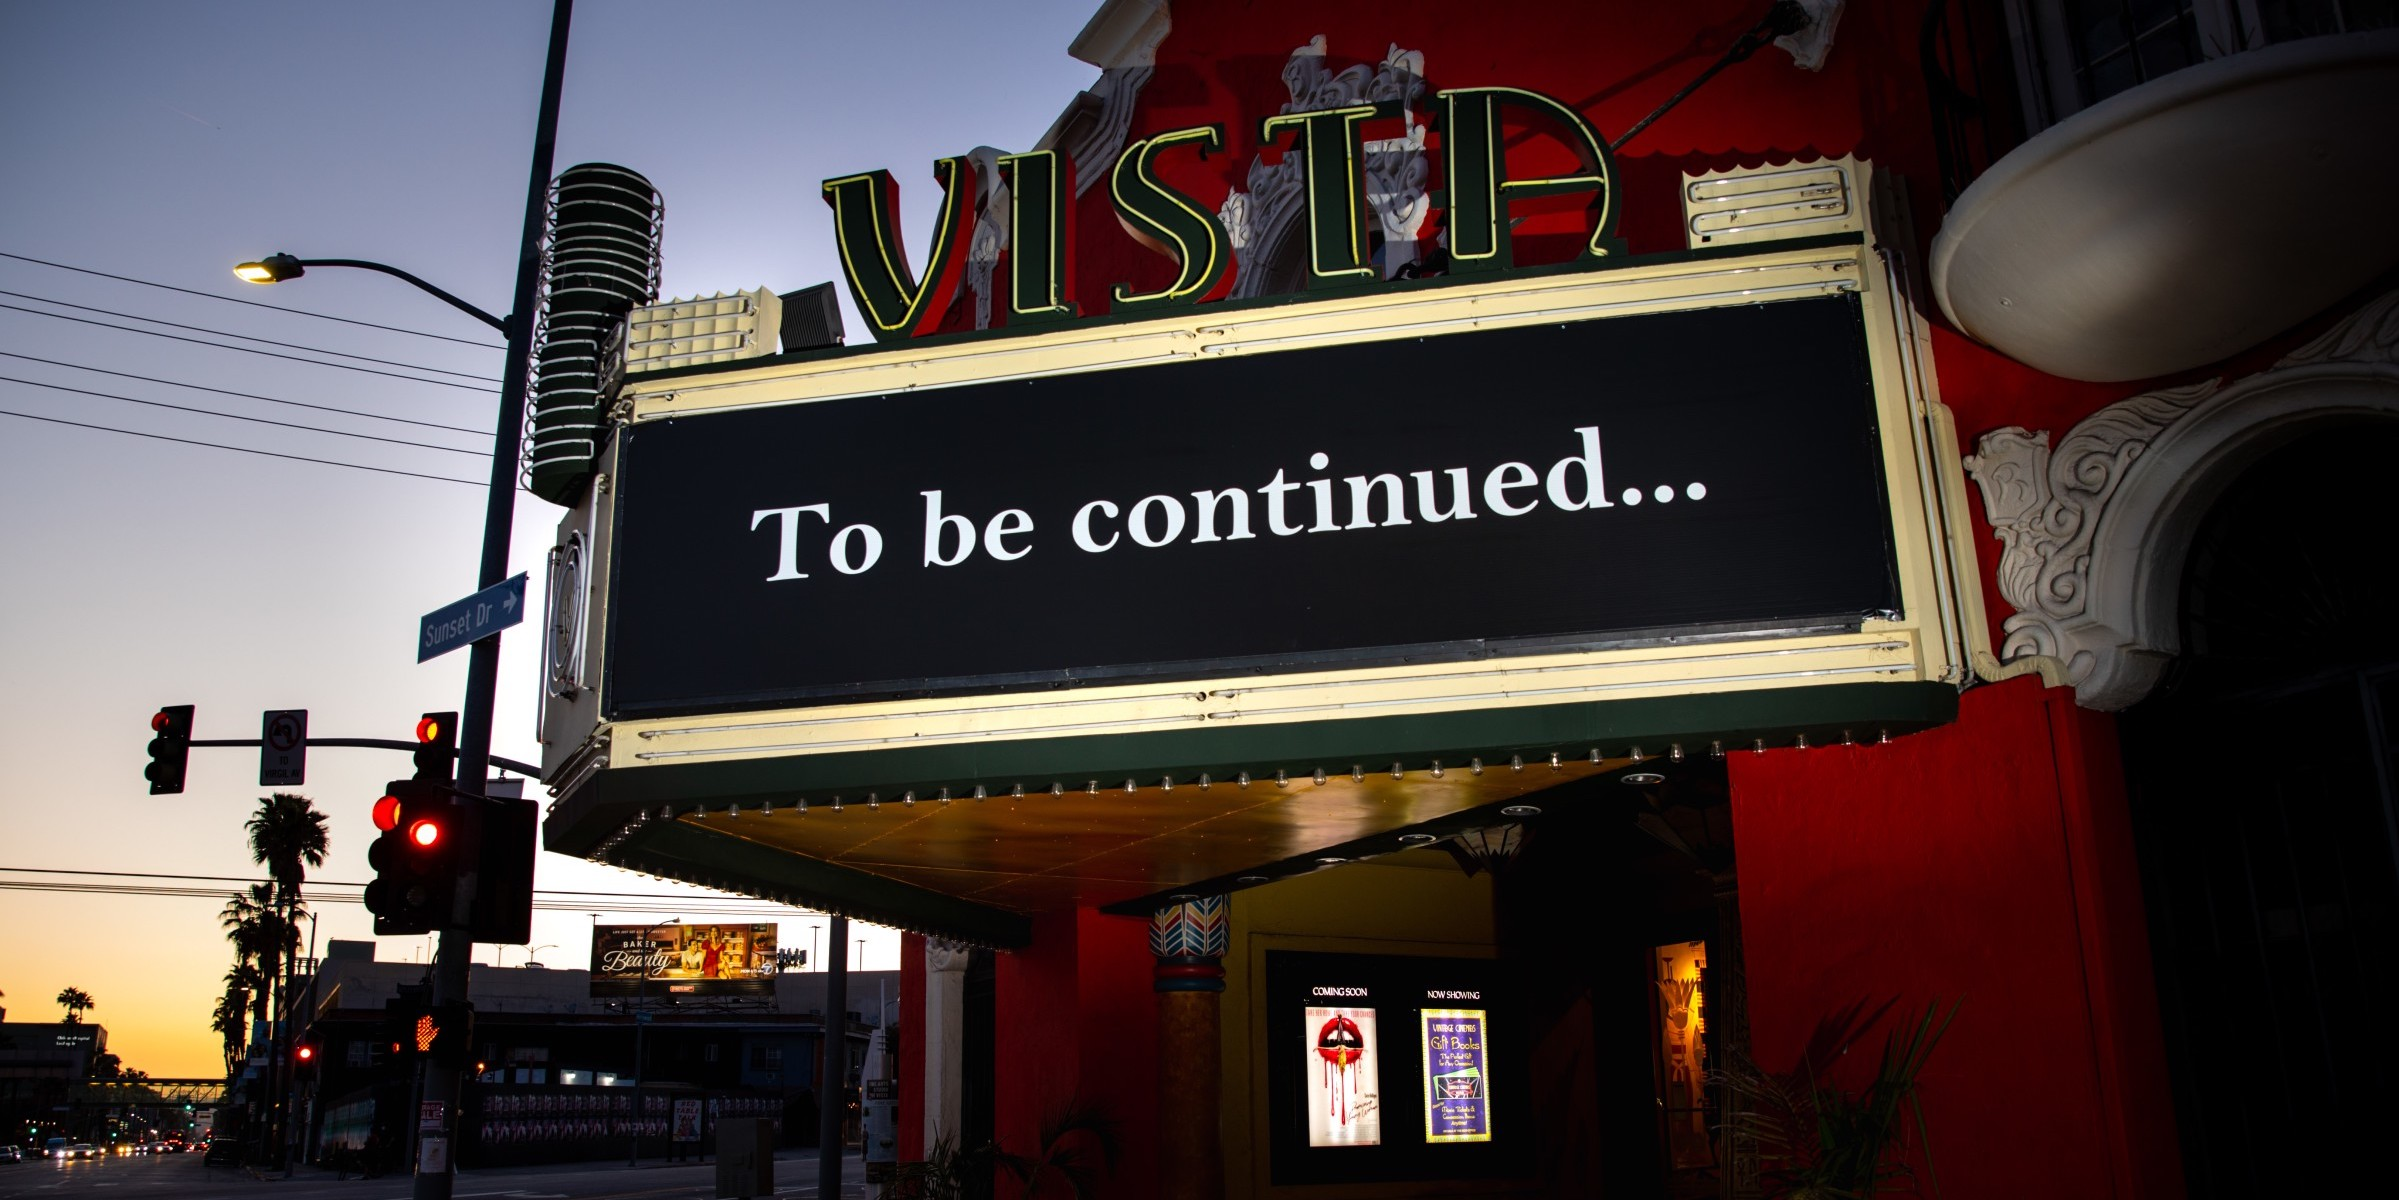 The Vista Theatre on Sunset Drive greets passersby with a hopeful message.